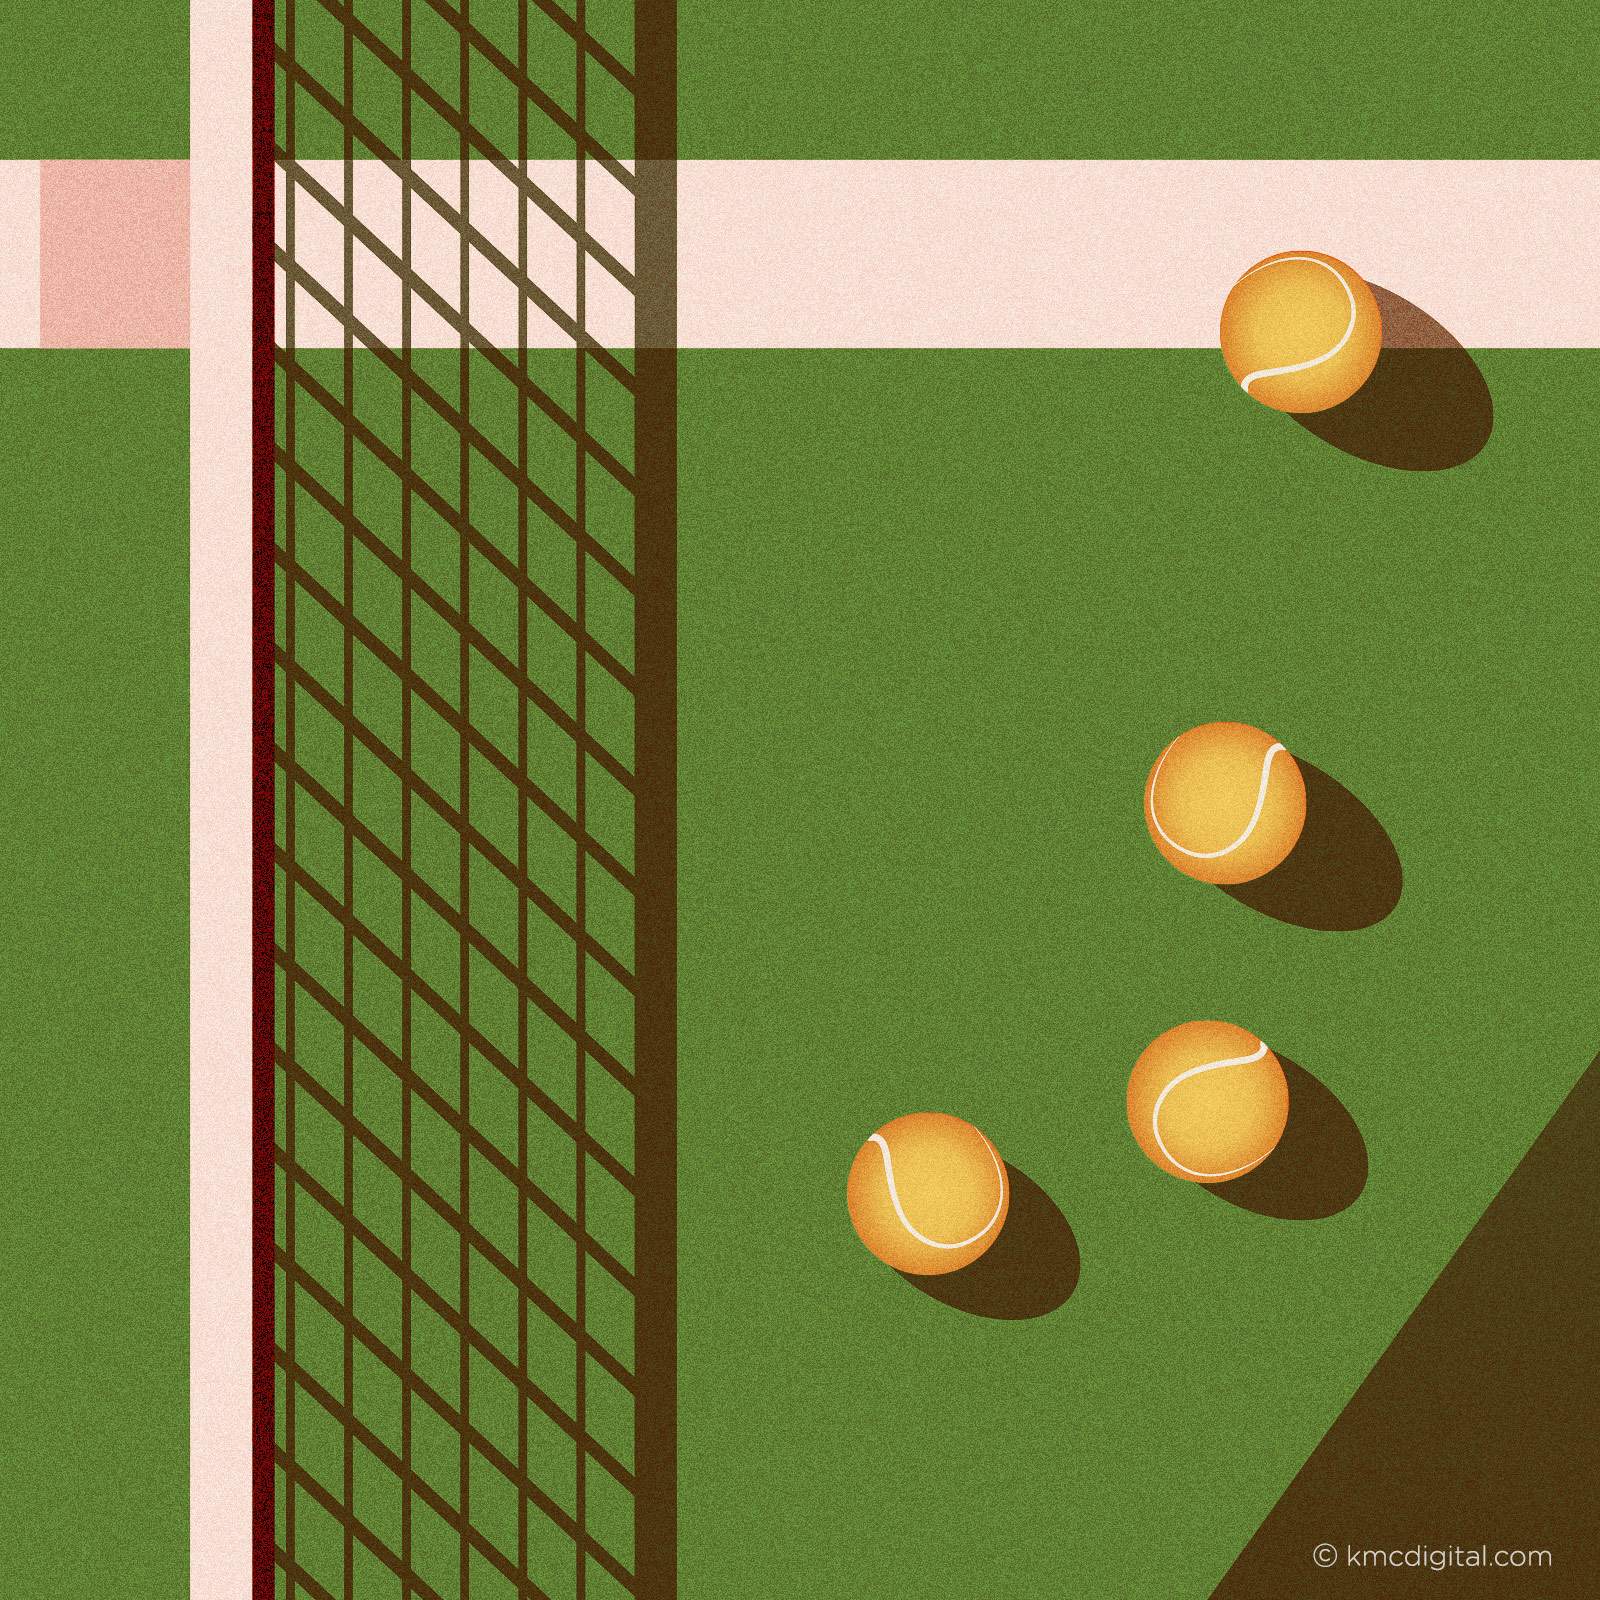 Illustration of tennis balls and net